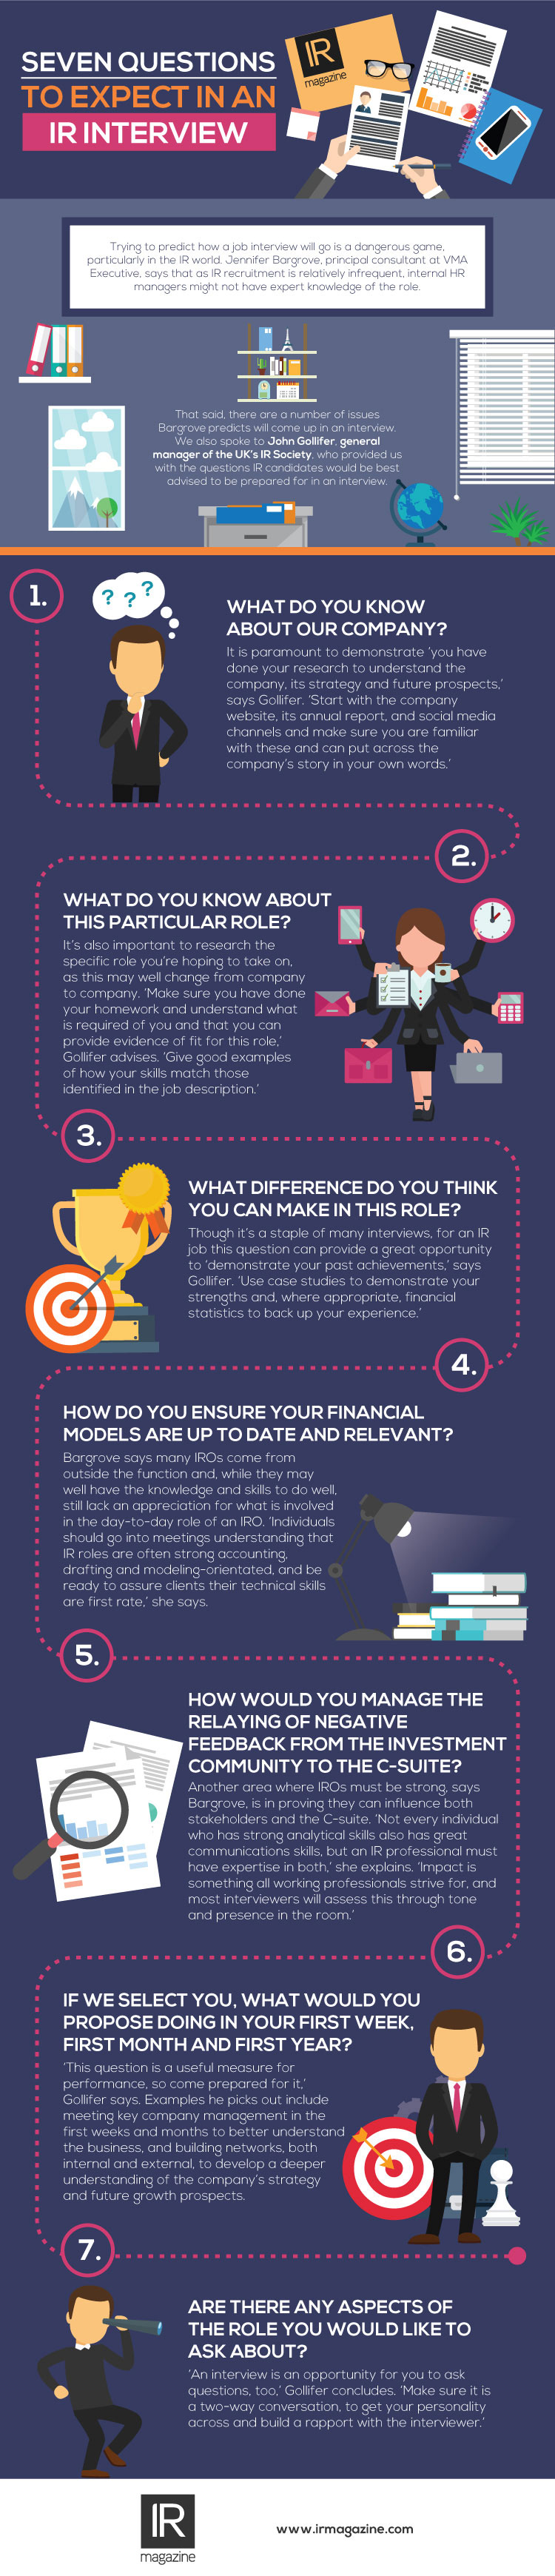 Infographic seven questions from IR interviews